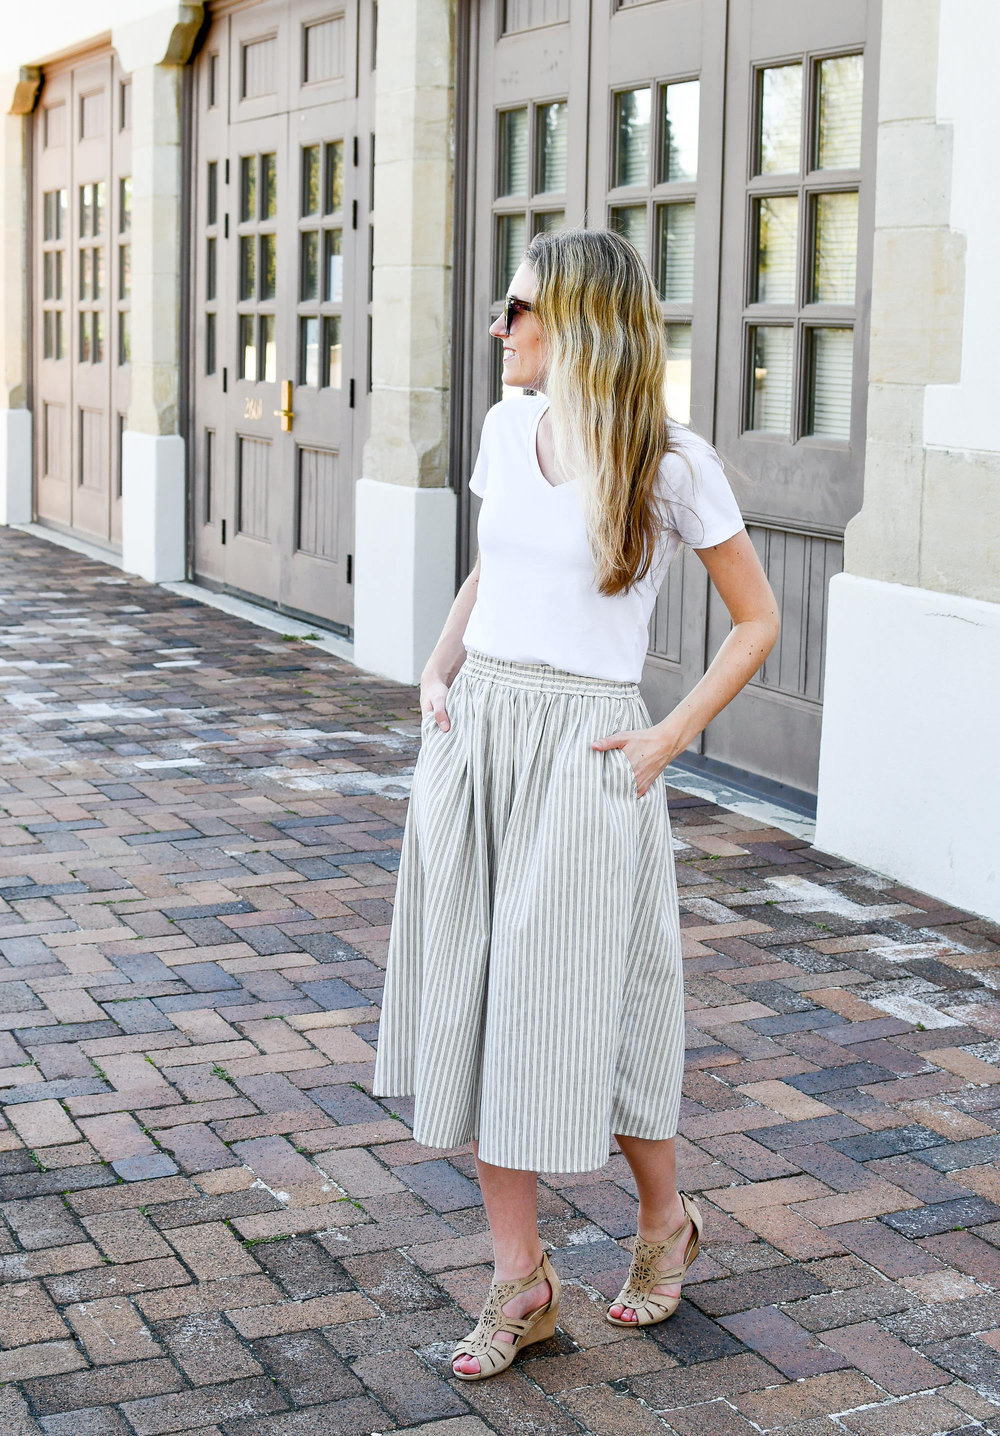 Amour Vert Greta midi skirt outfit — Cotton Cashmere Cat Hair